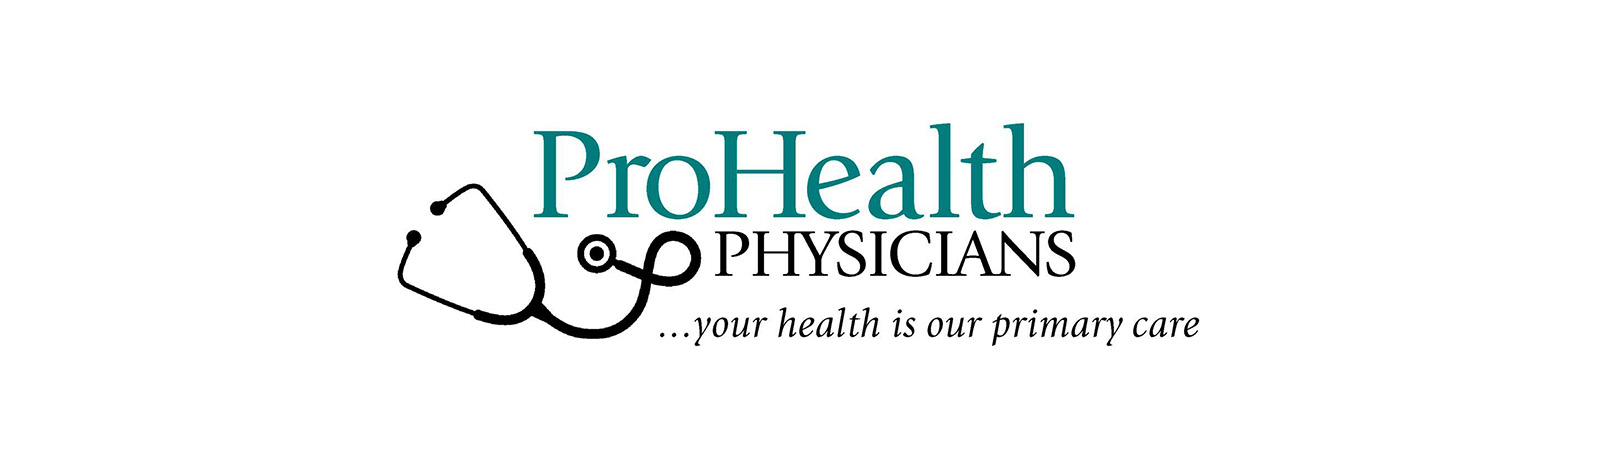 prohealth physicians healthcare sector ta a private equity firm